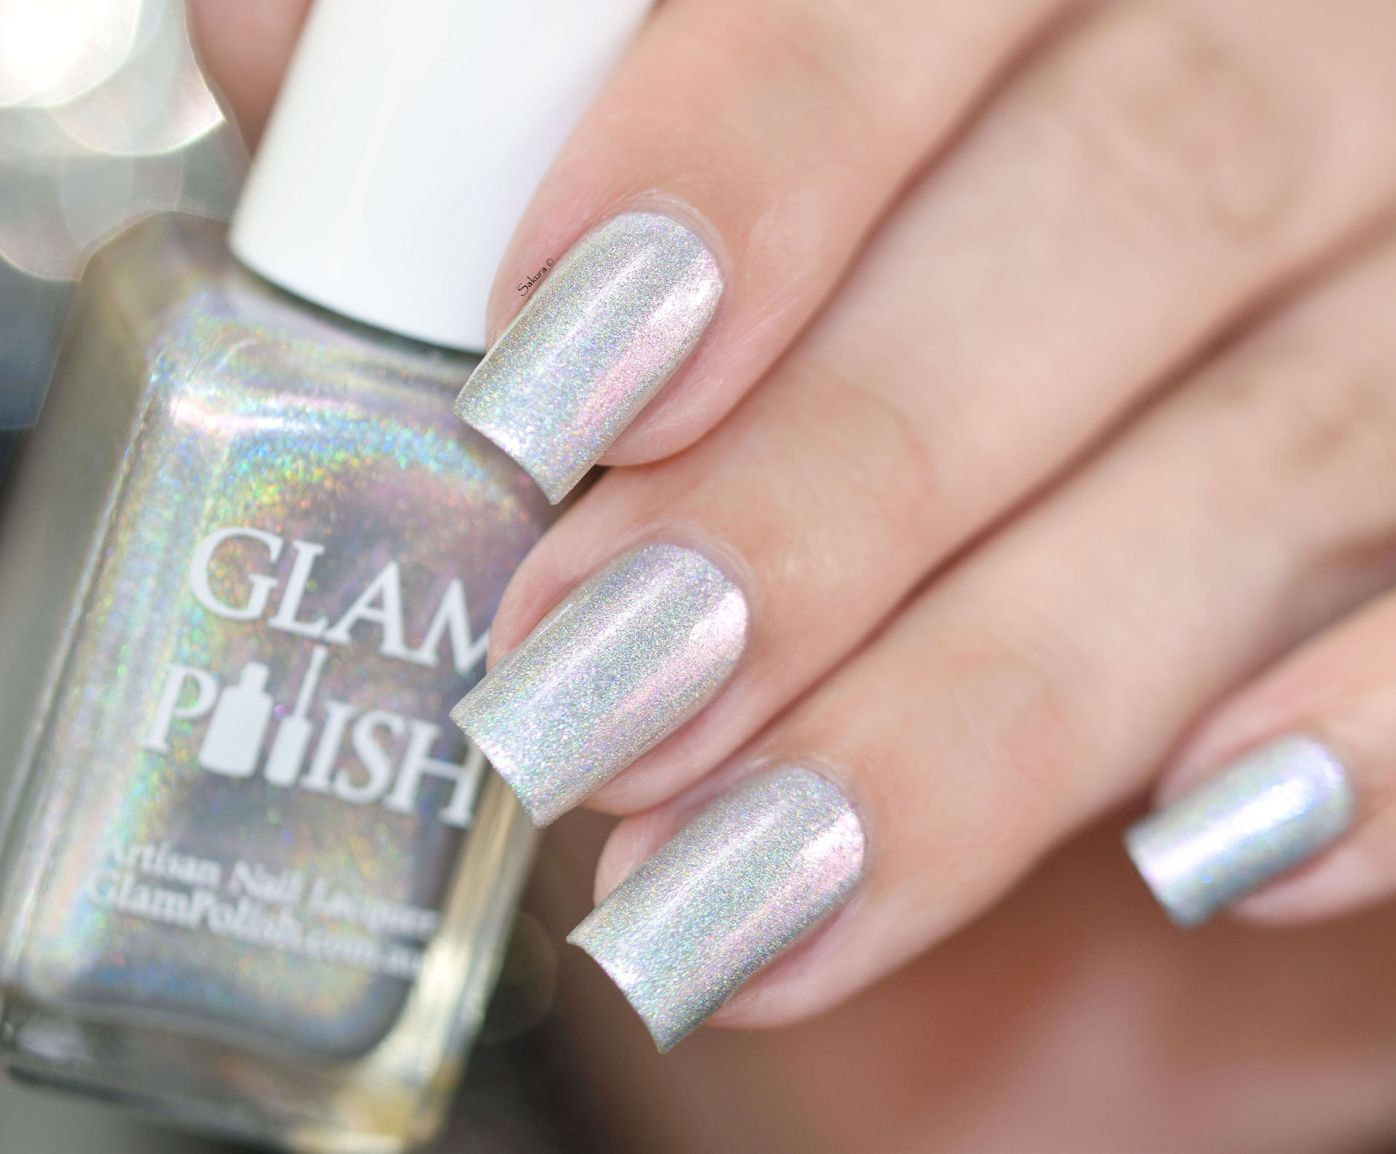 GLAMPOLISH THE SHIMMER AWAKENS 5